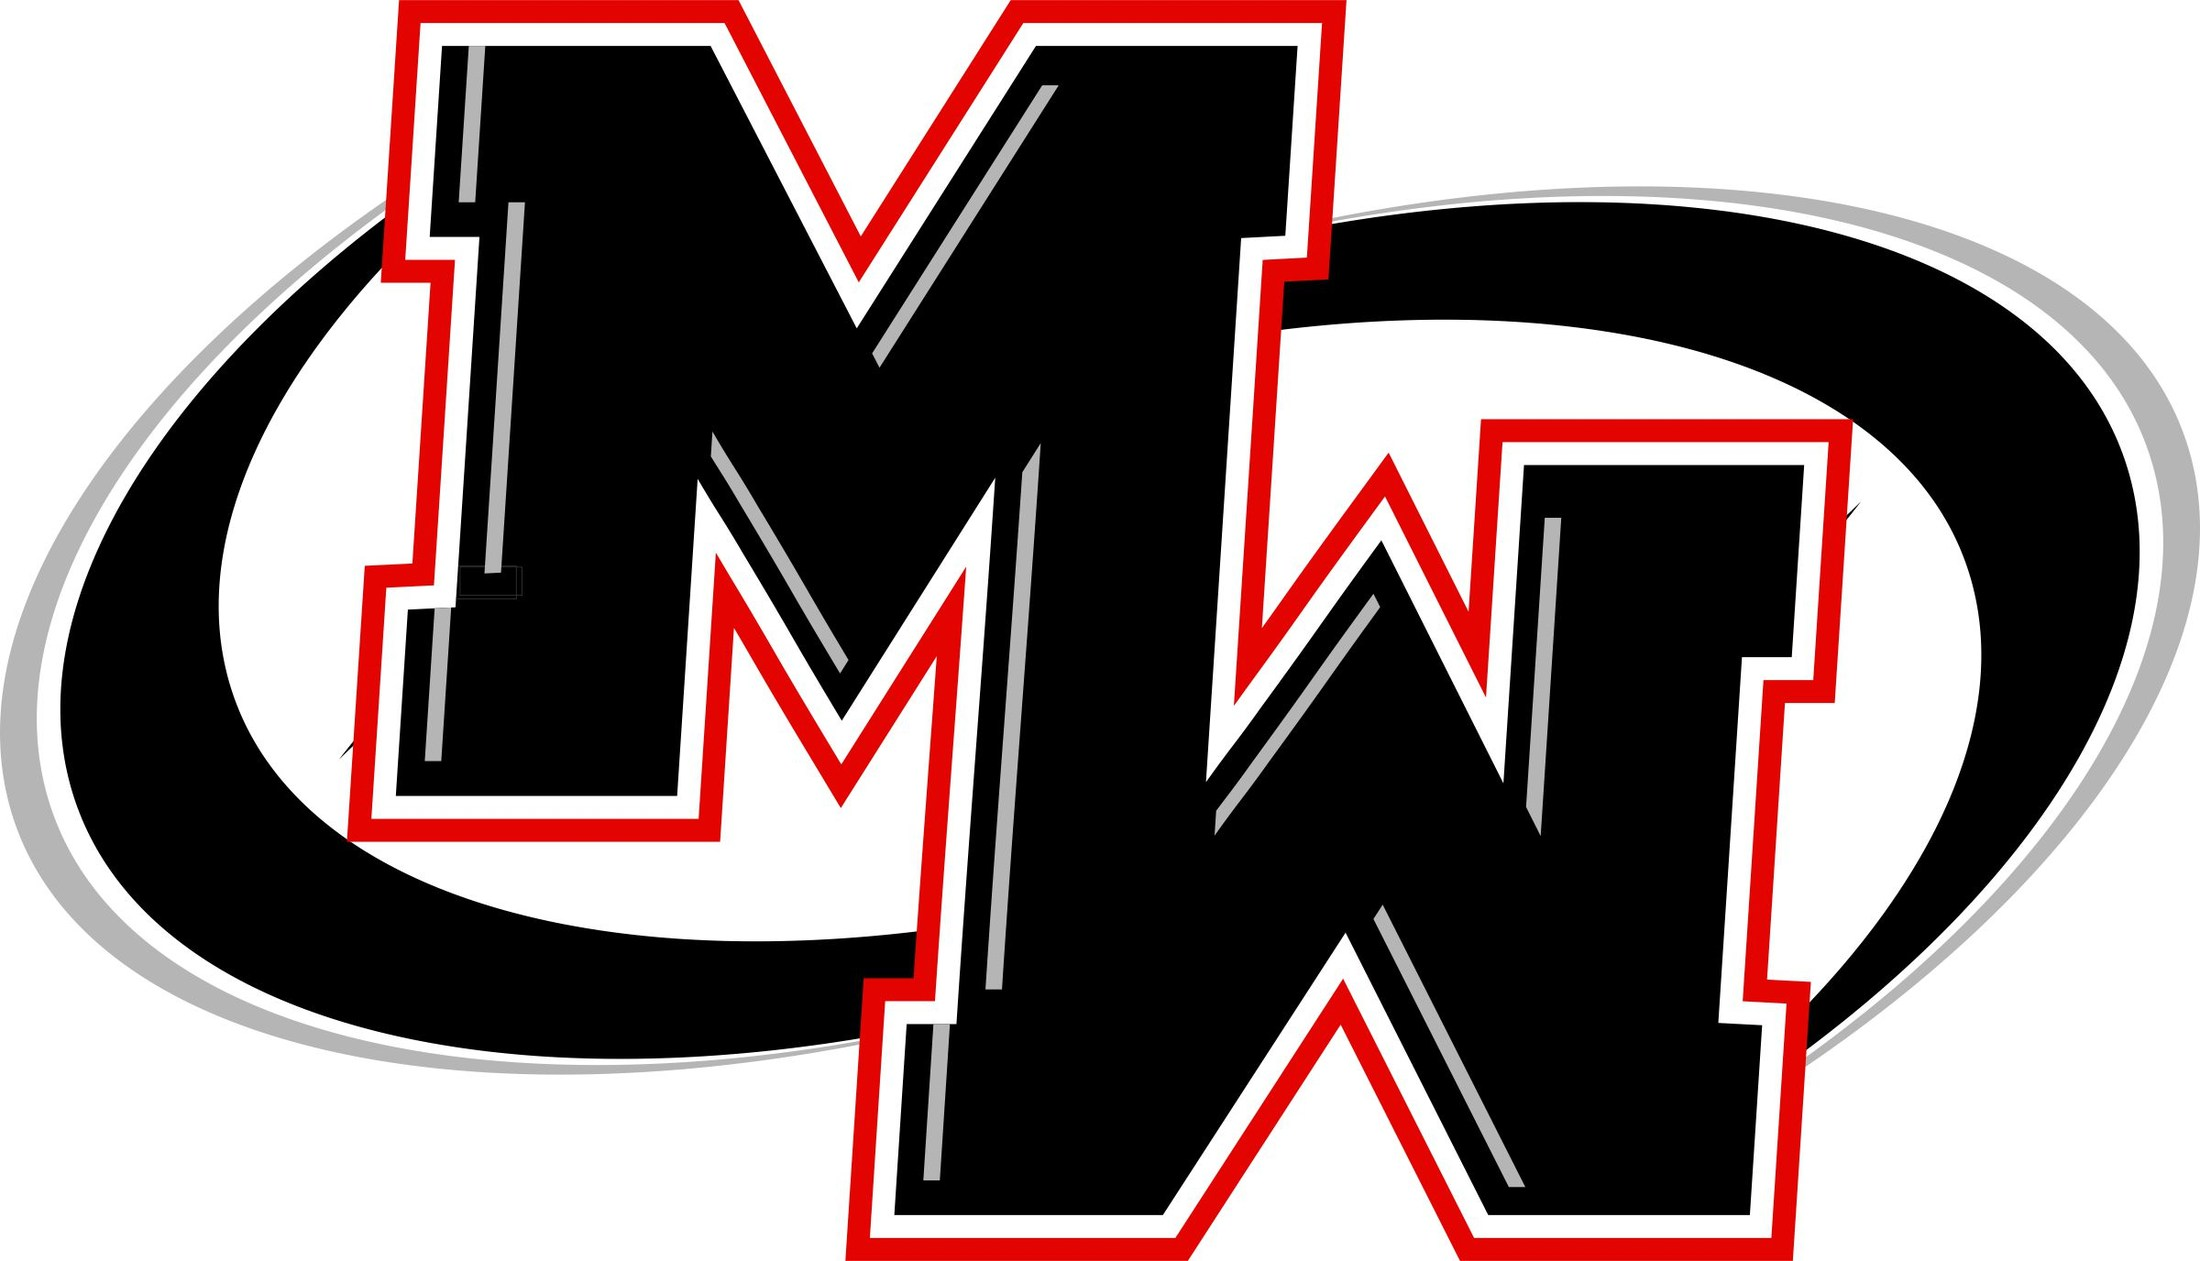 MW logo with swoop